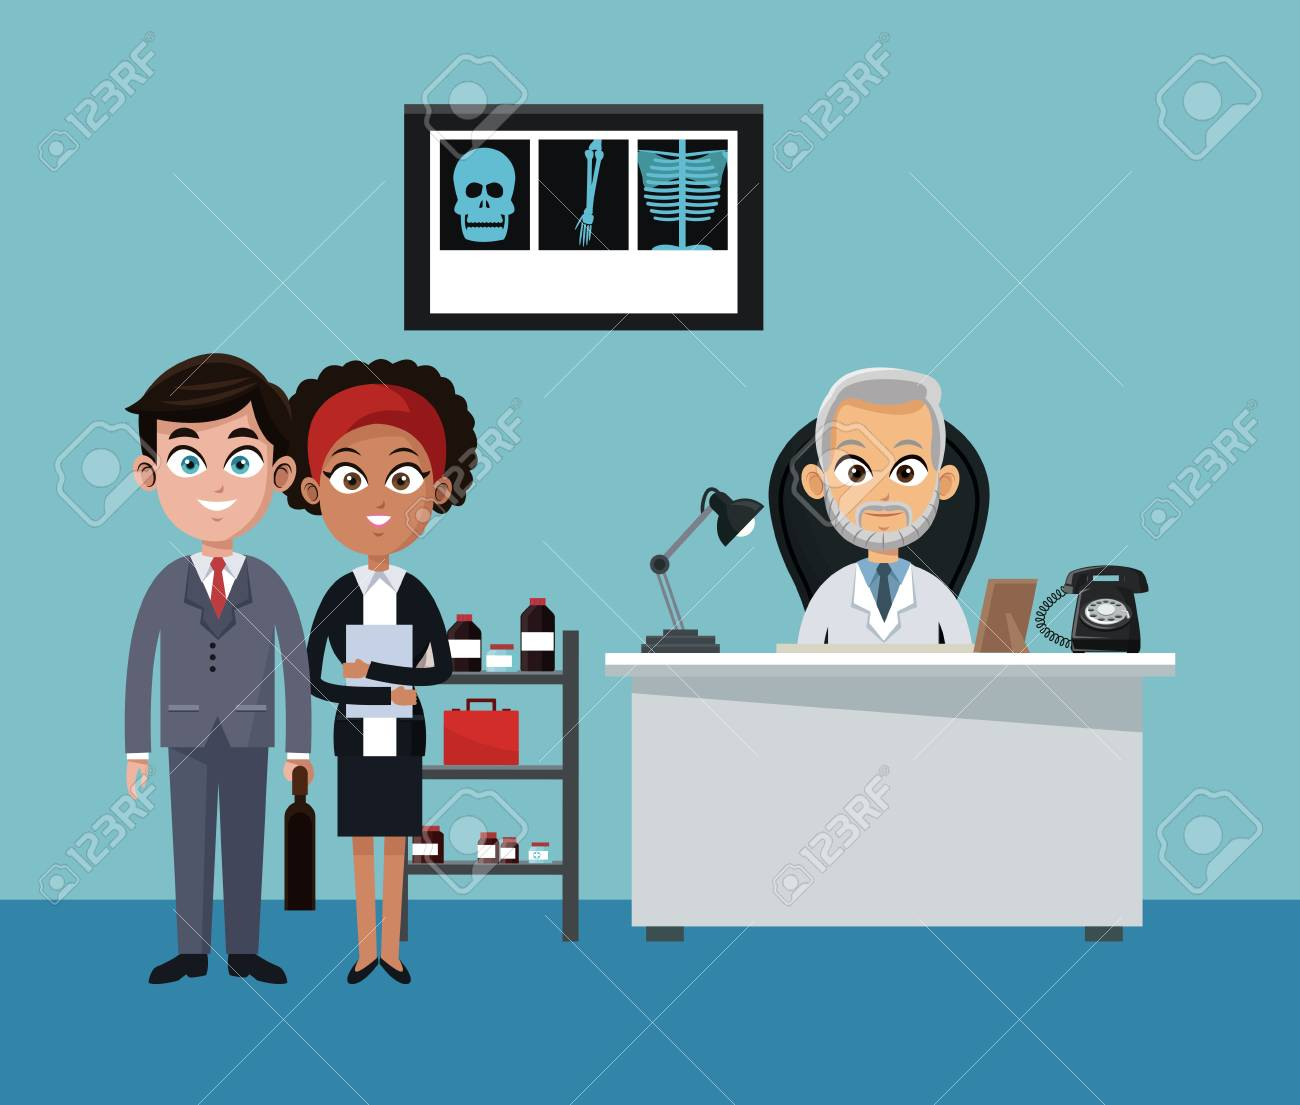 Businessman and doctor in office cartoons vector illustration graphic design - 104418653